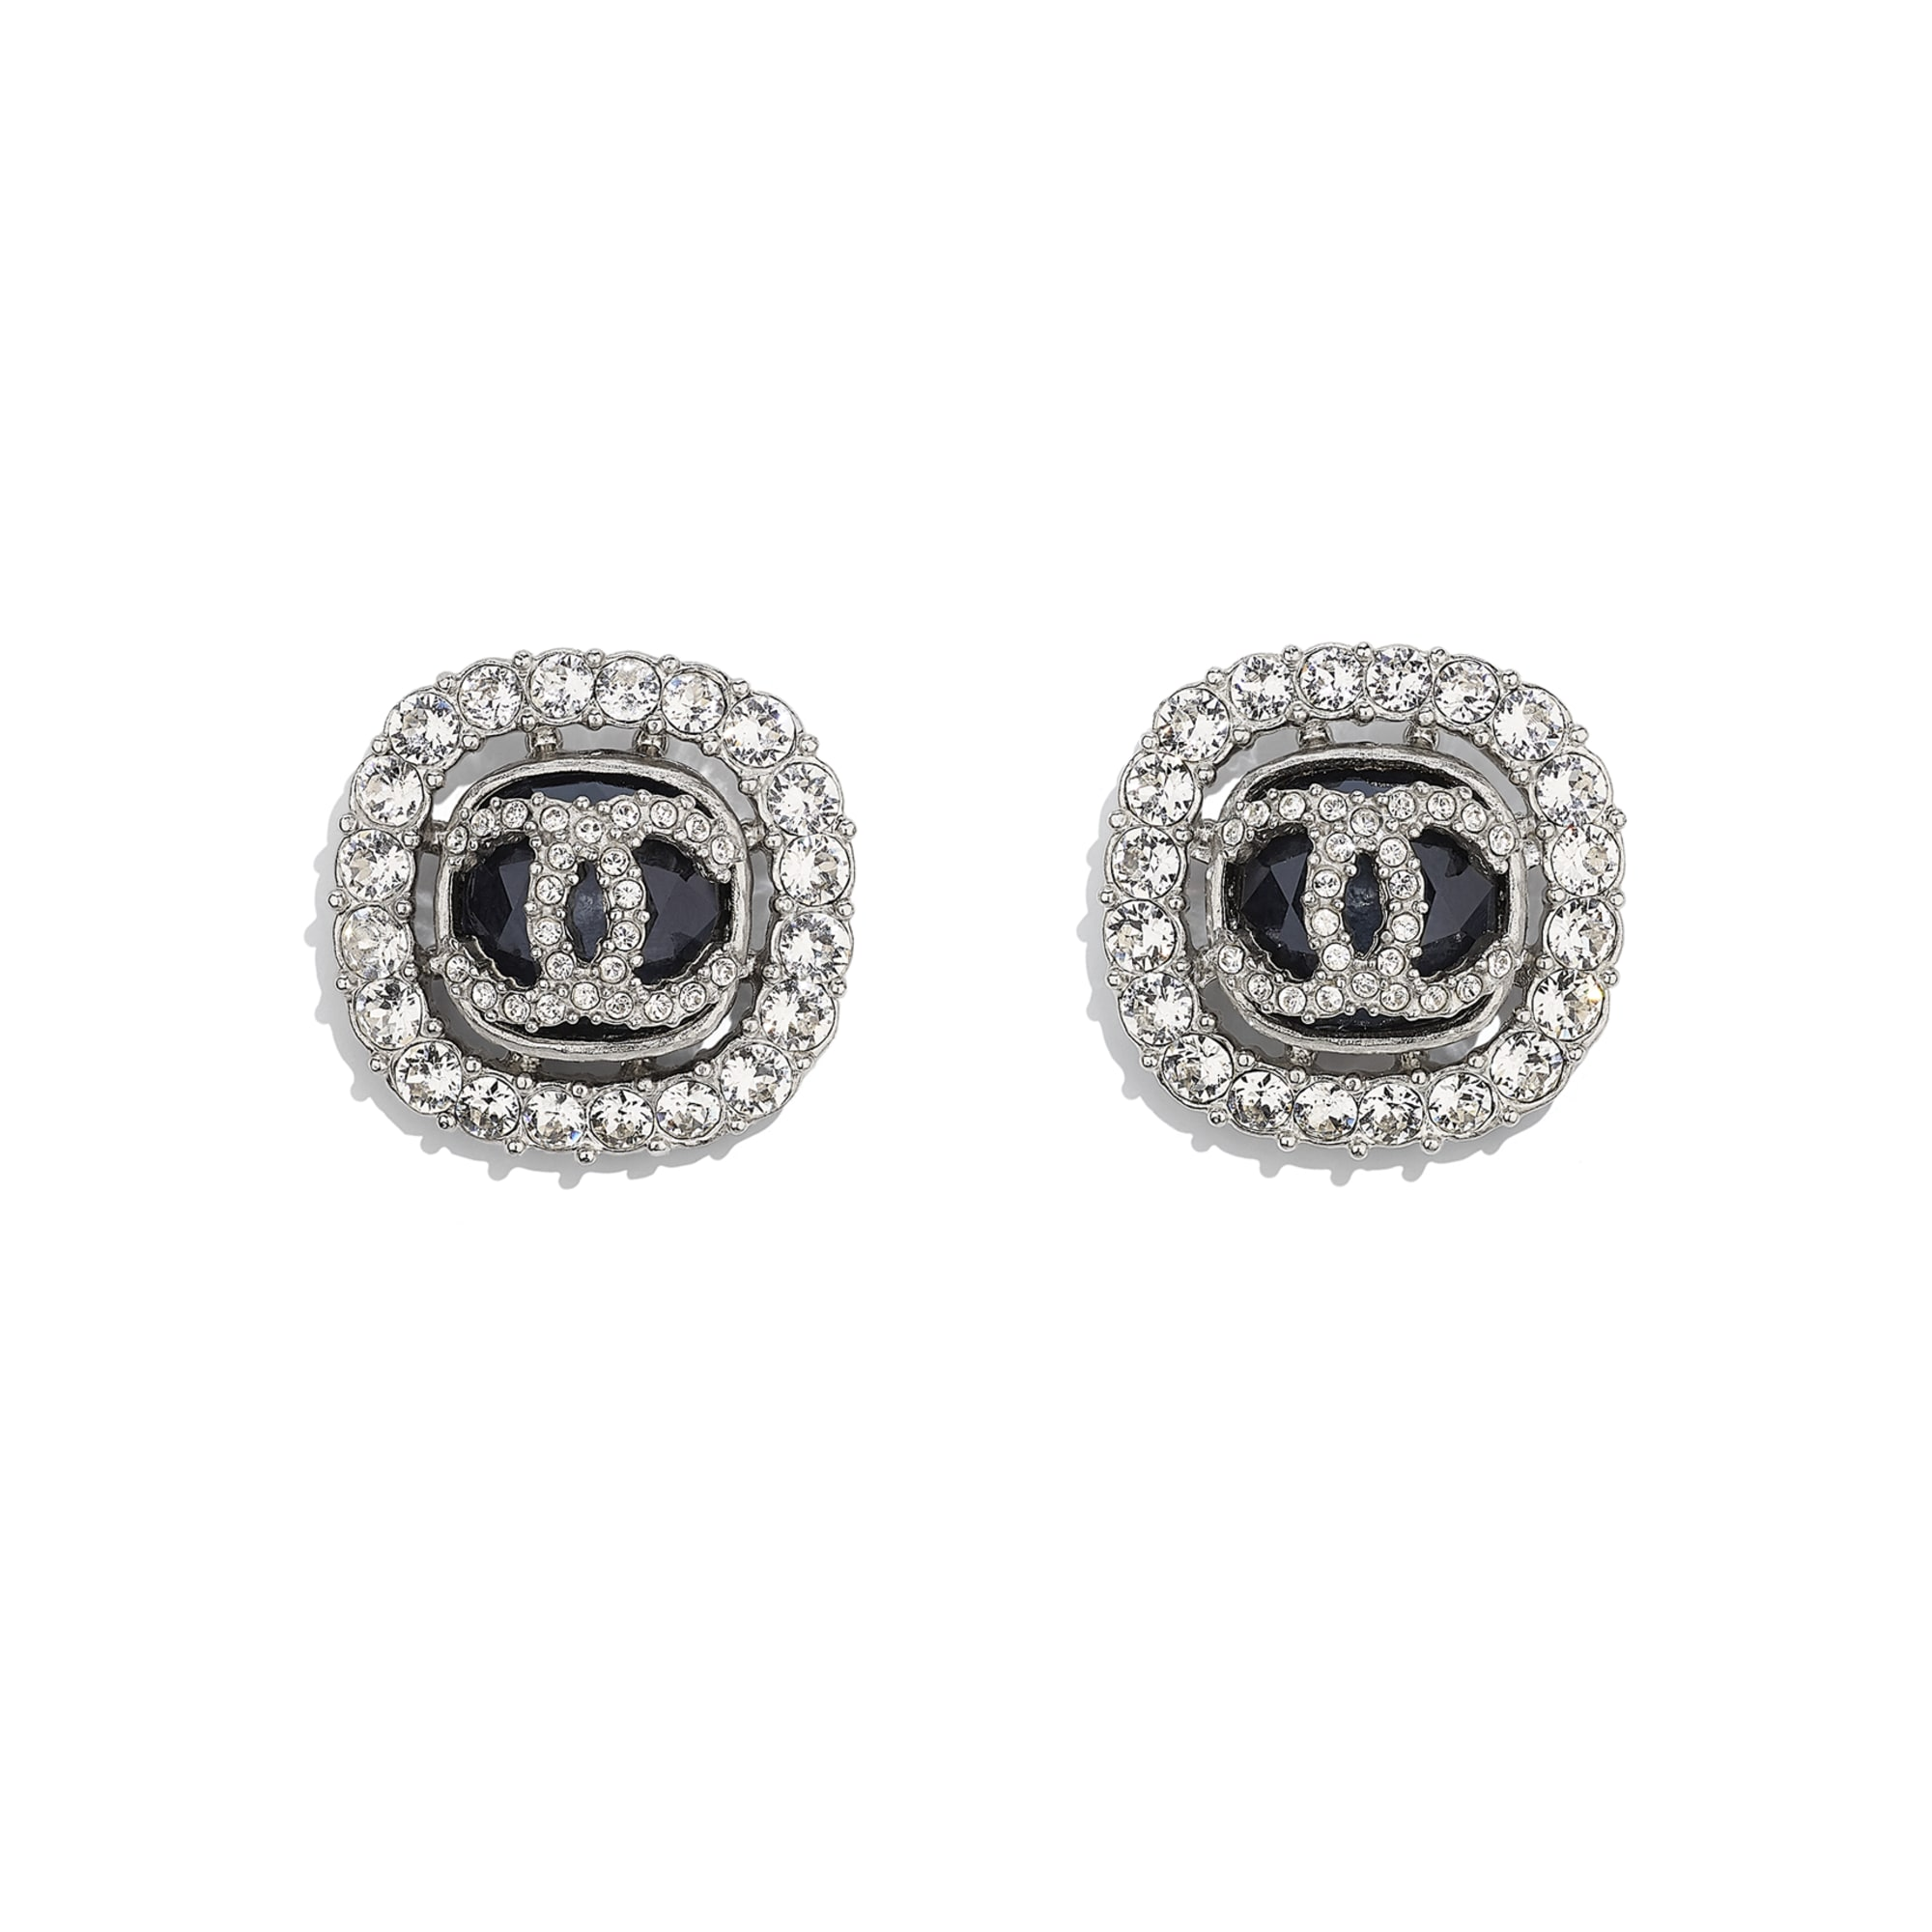 Earrings - Silver, Black & Crystal - Metal & Diamantés - CHANEL - Default view - see standard sized version